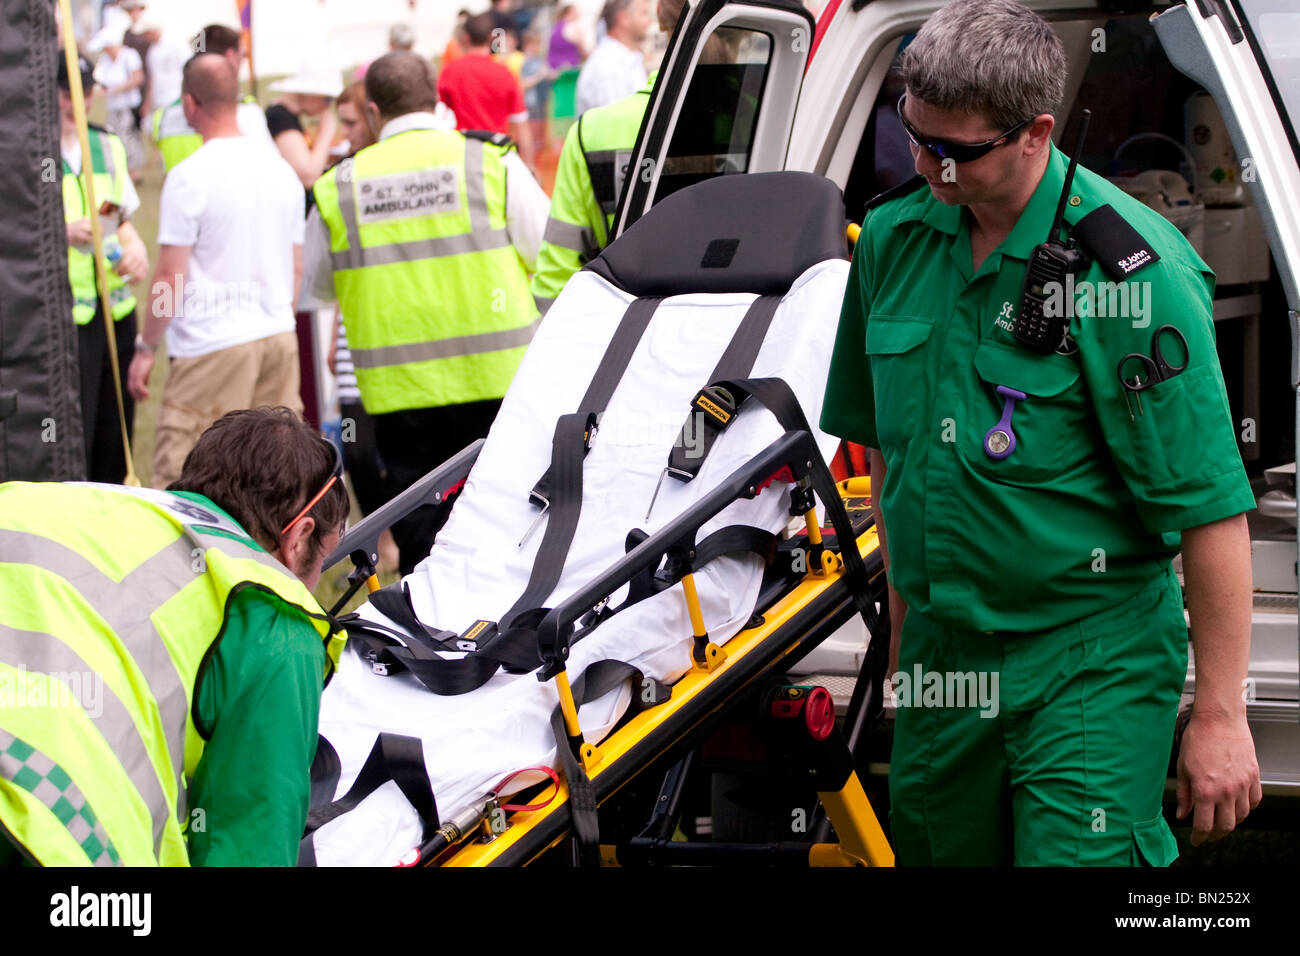 Two paramedics lifting a stretcher in to the back of an ambulance - Stock Image